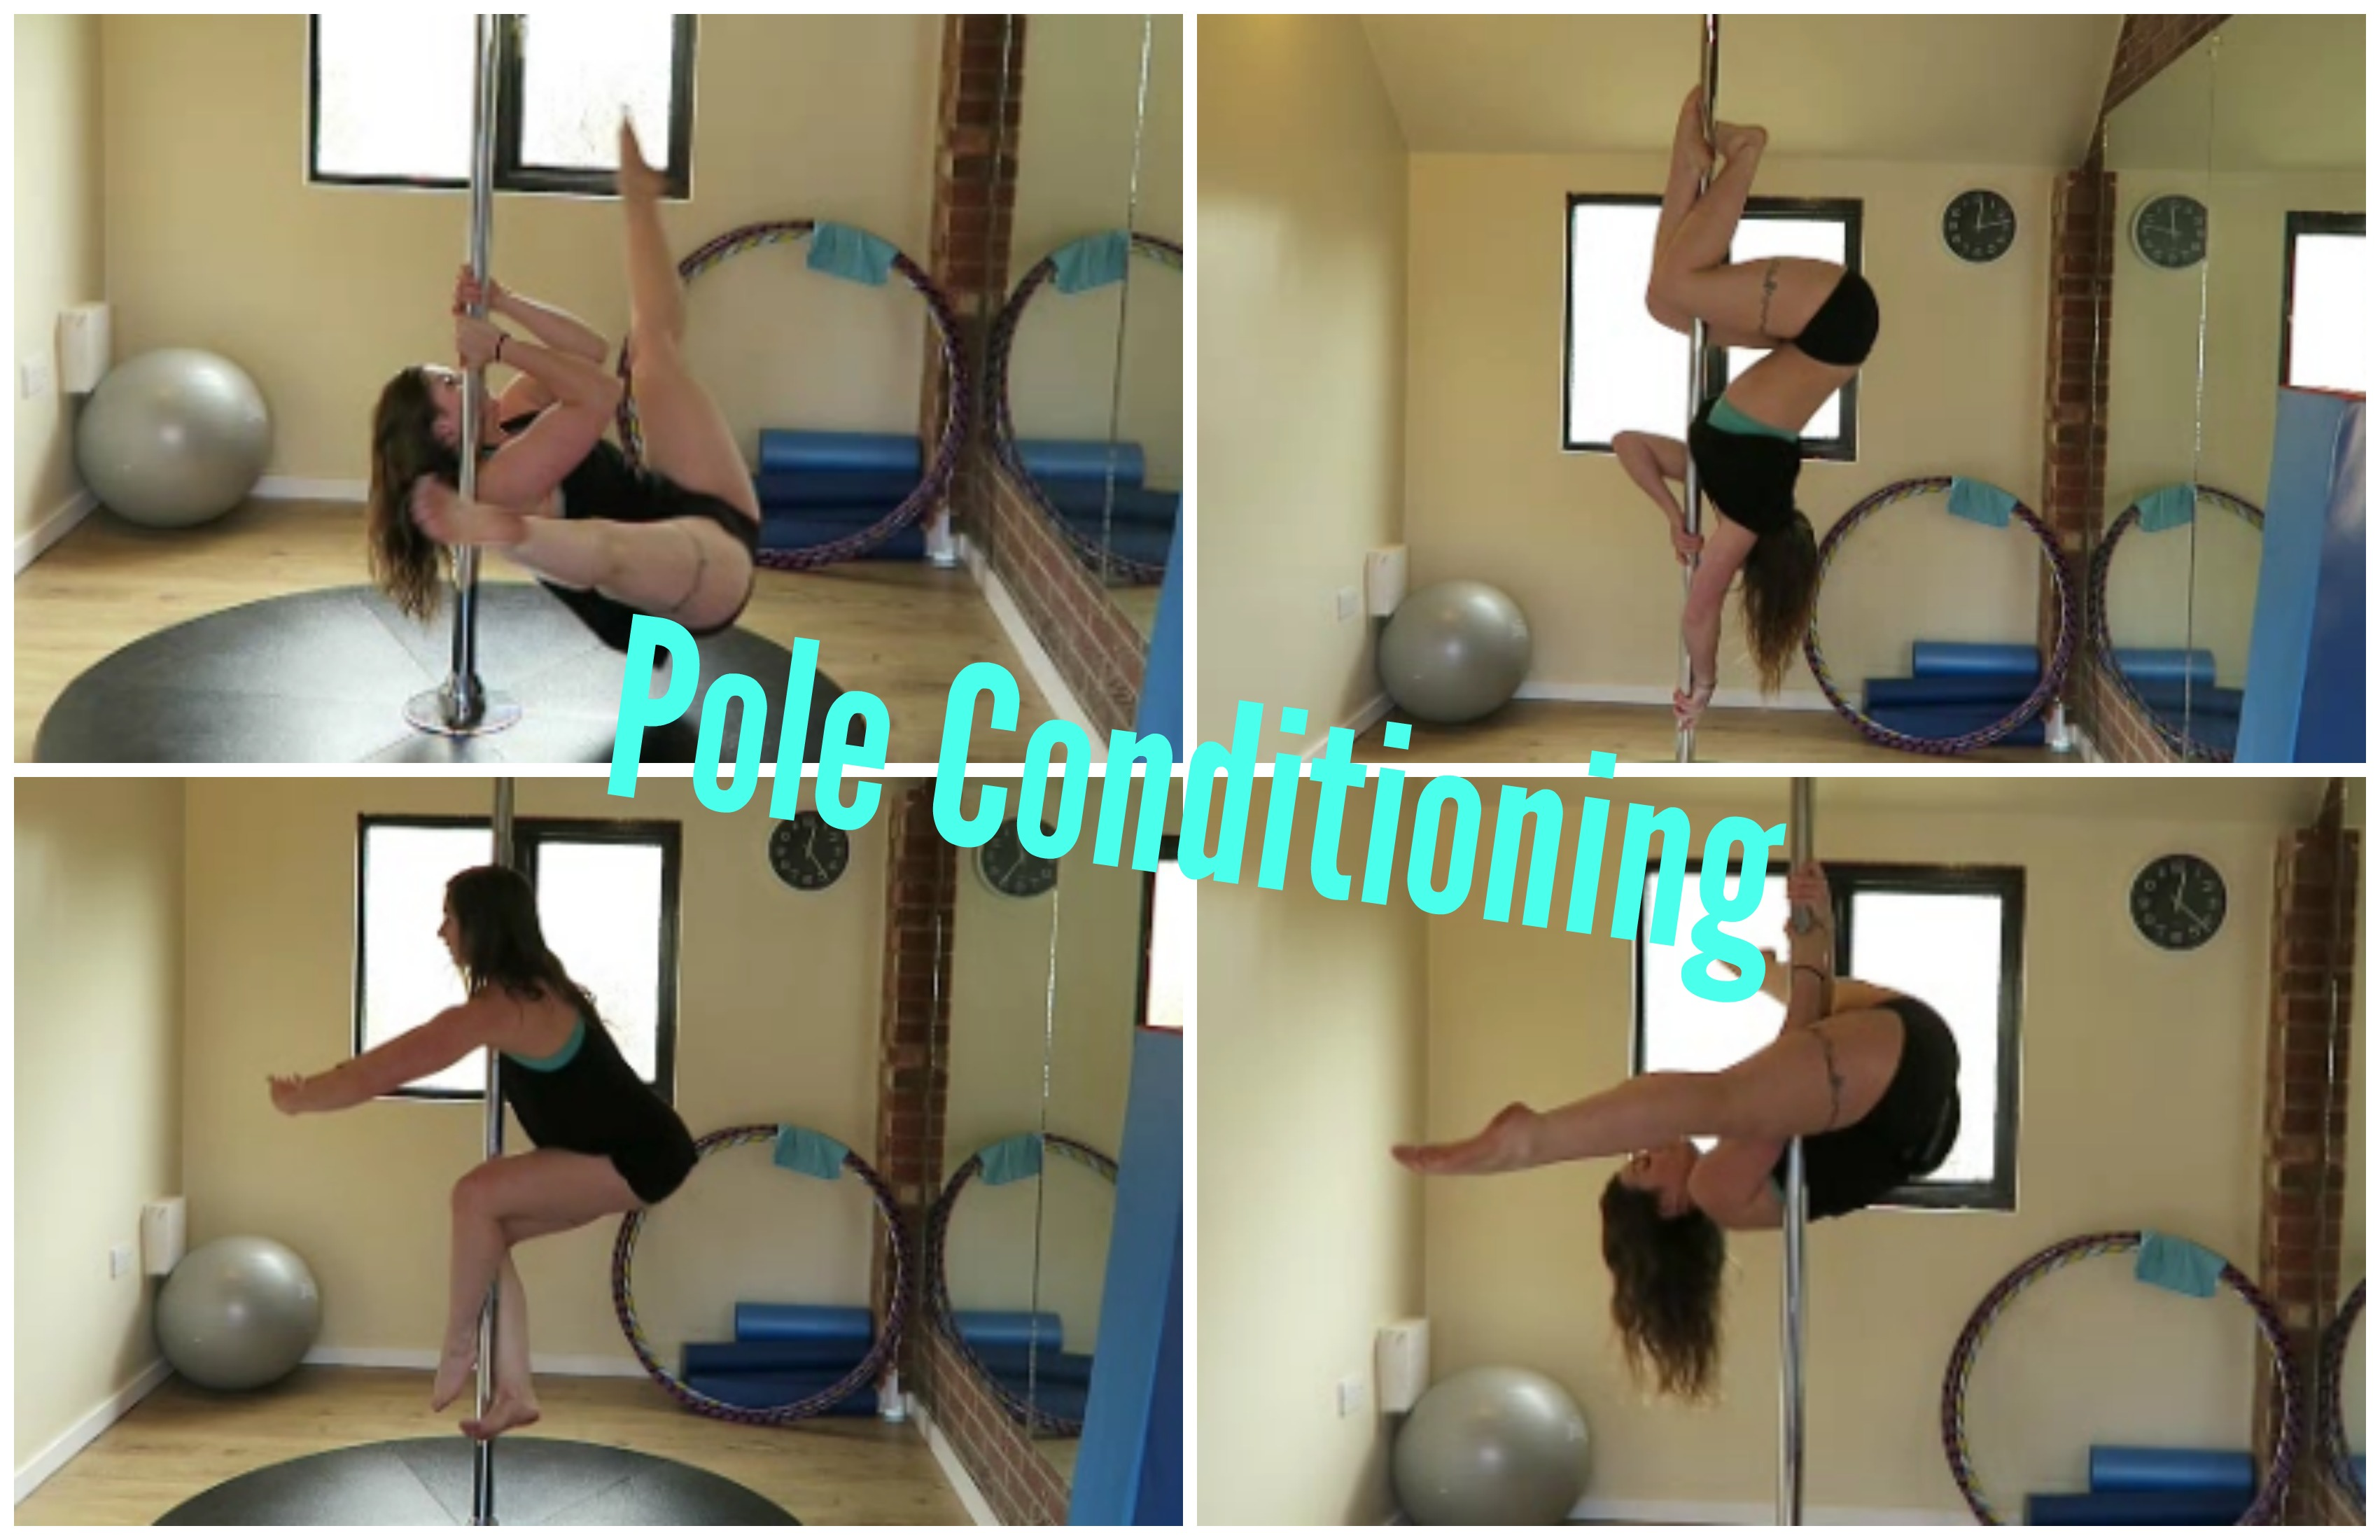 Pole Conditioning Exercises